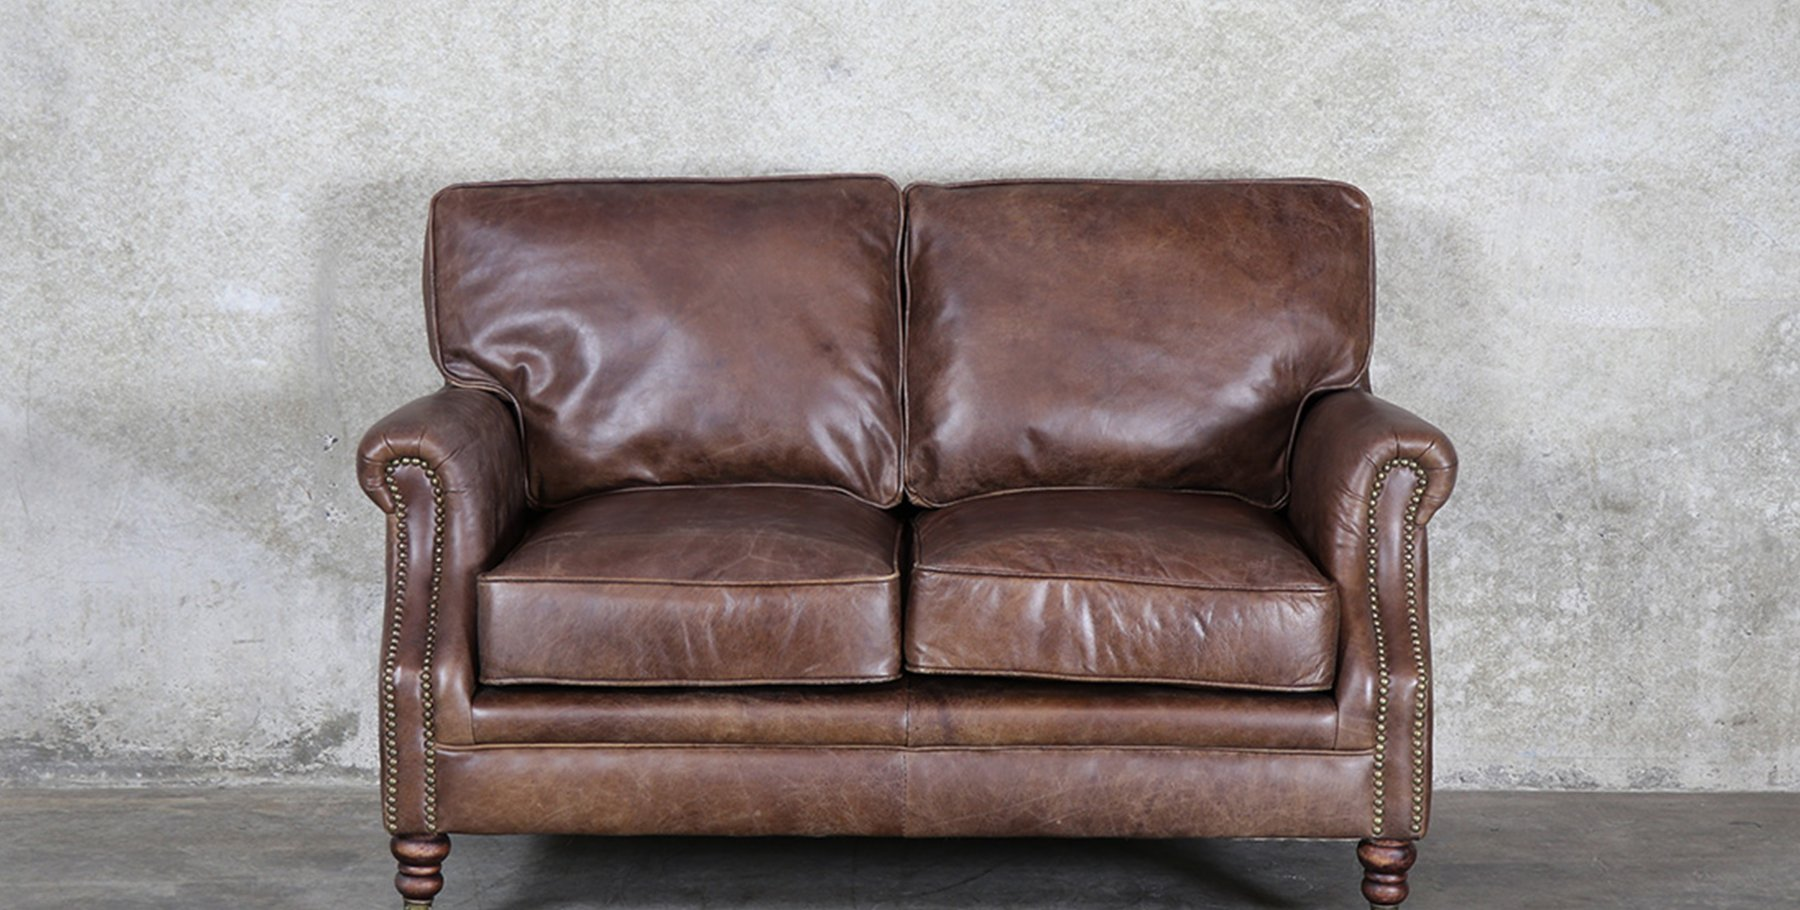 Princeton Leather Sofa 2 Seater Soft Touch Brown By